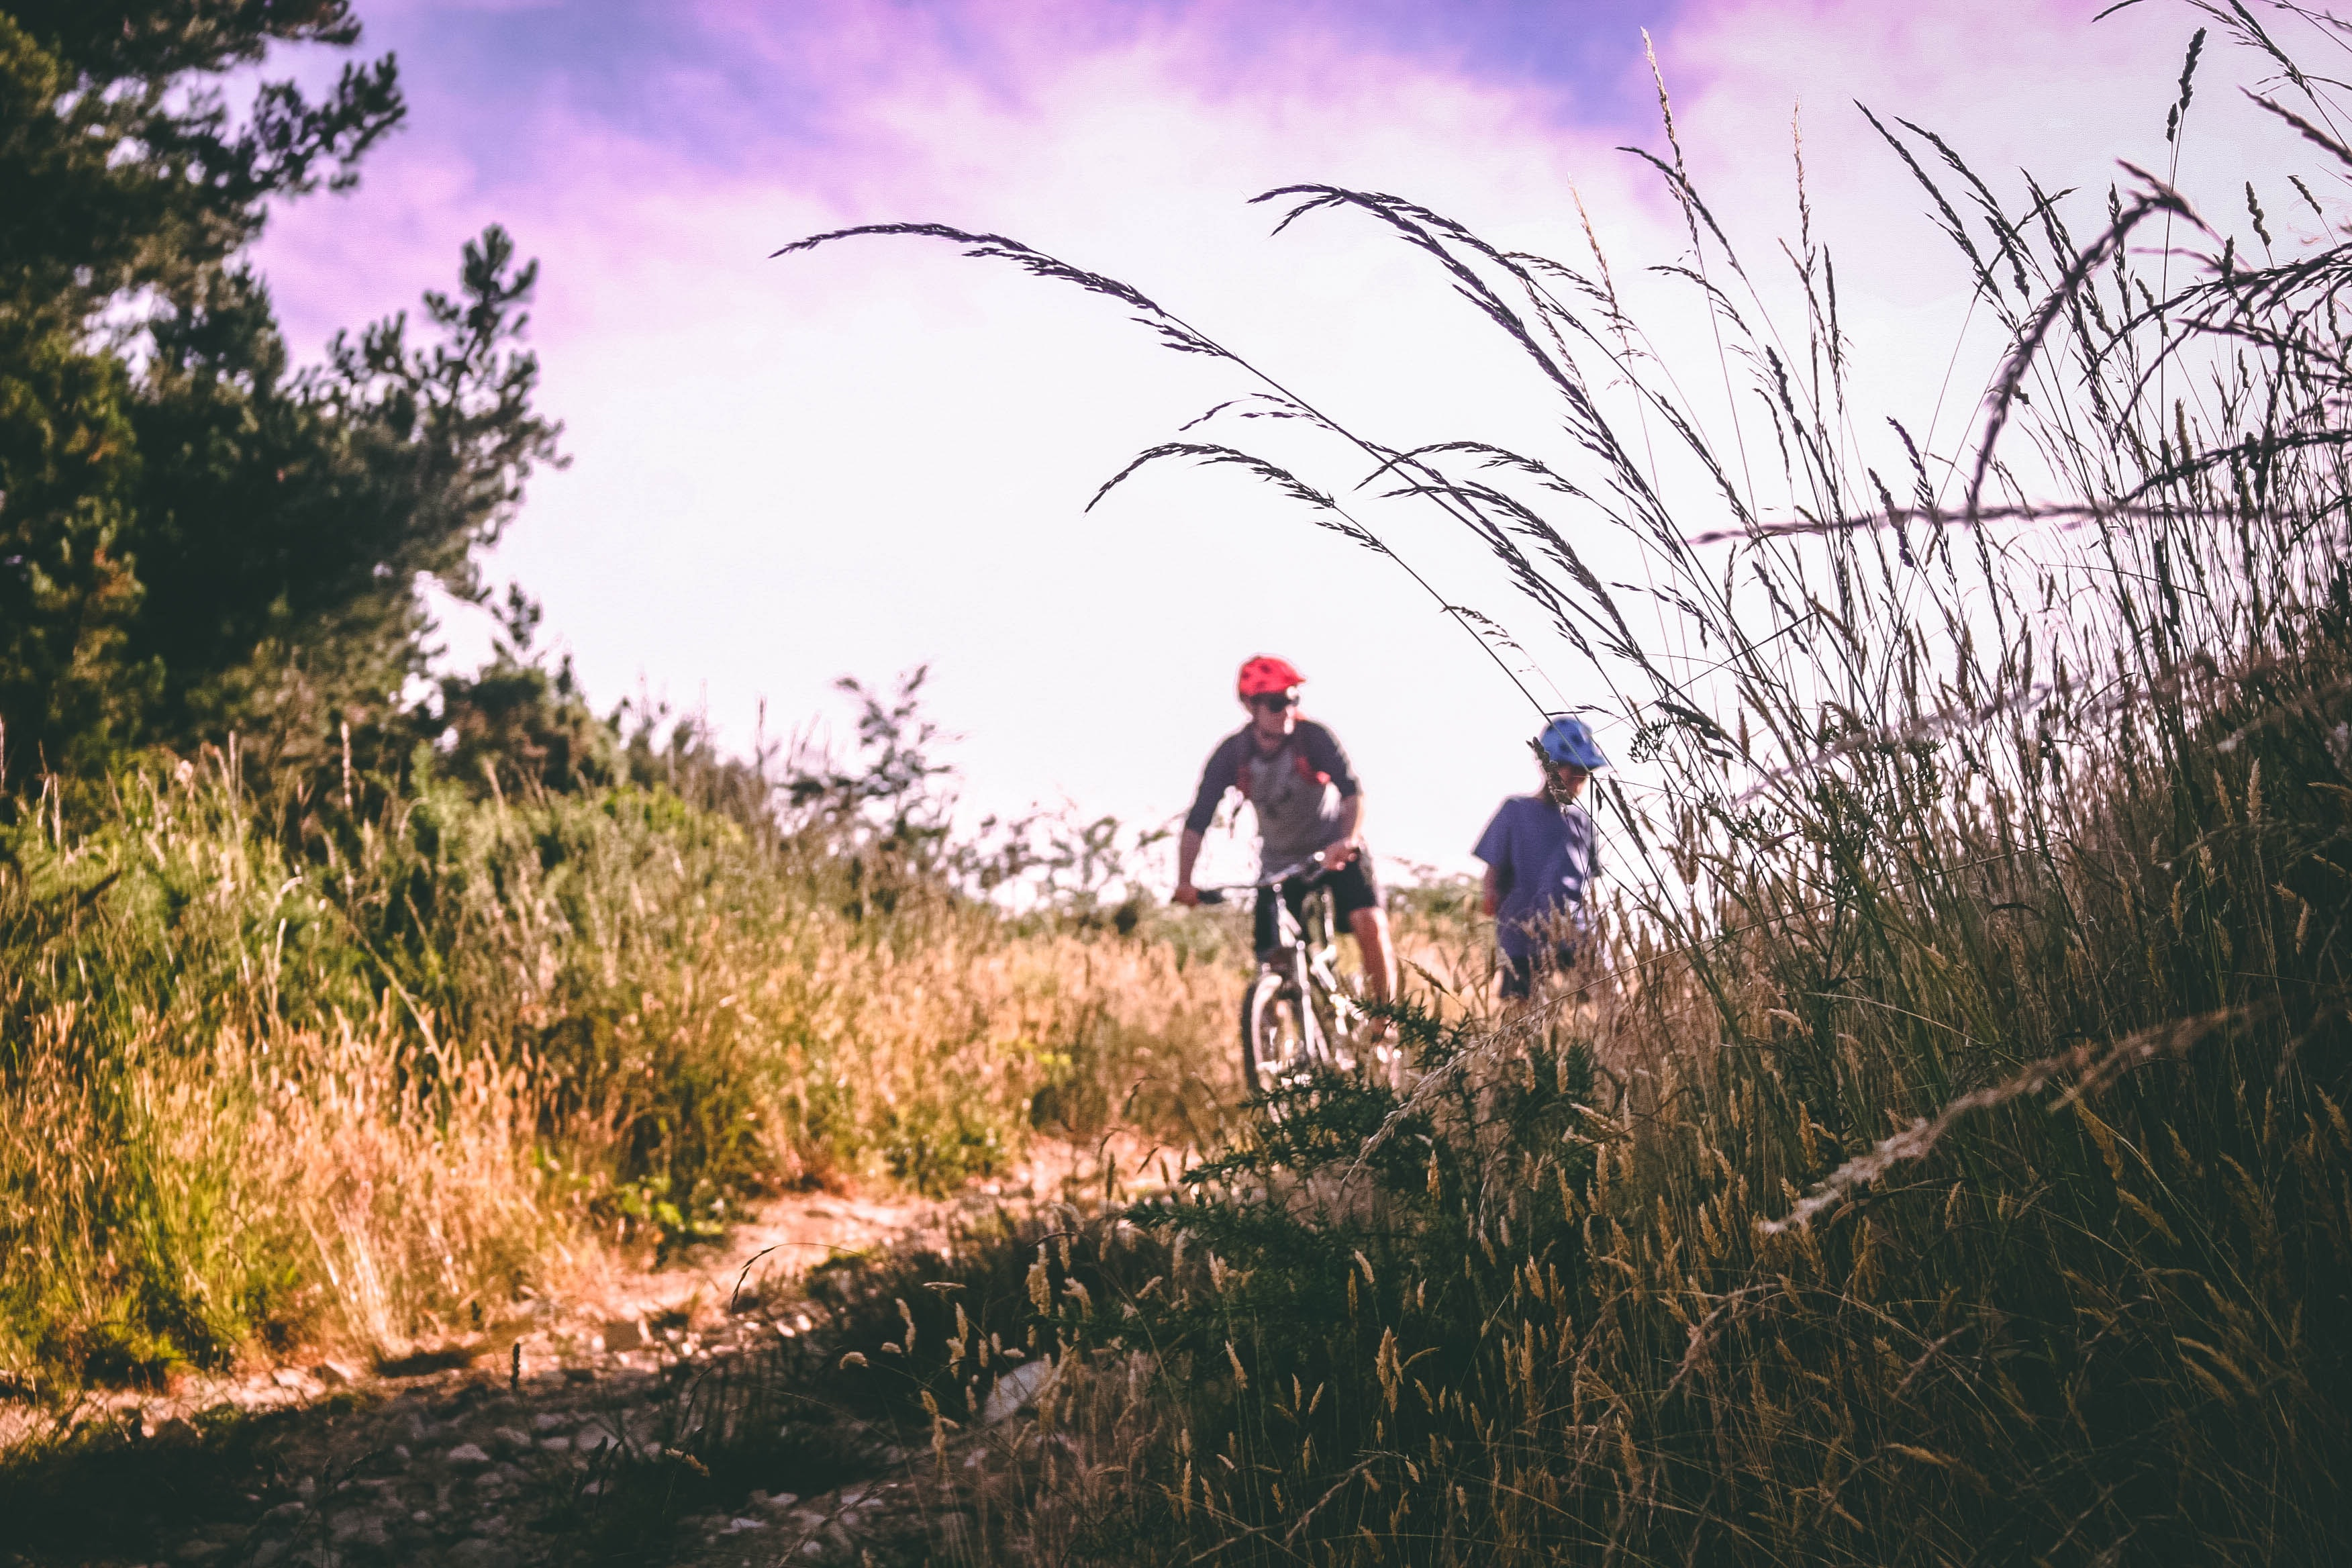 Two People Riding Bicycle, Mountain bike, Unpaved pathway, Trees, Sky, HQ Photo